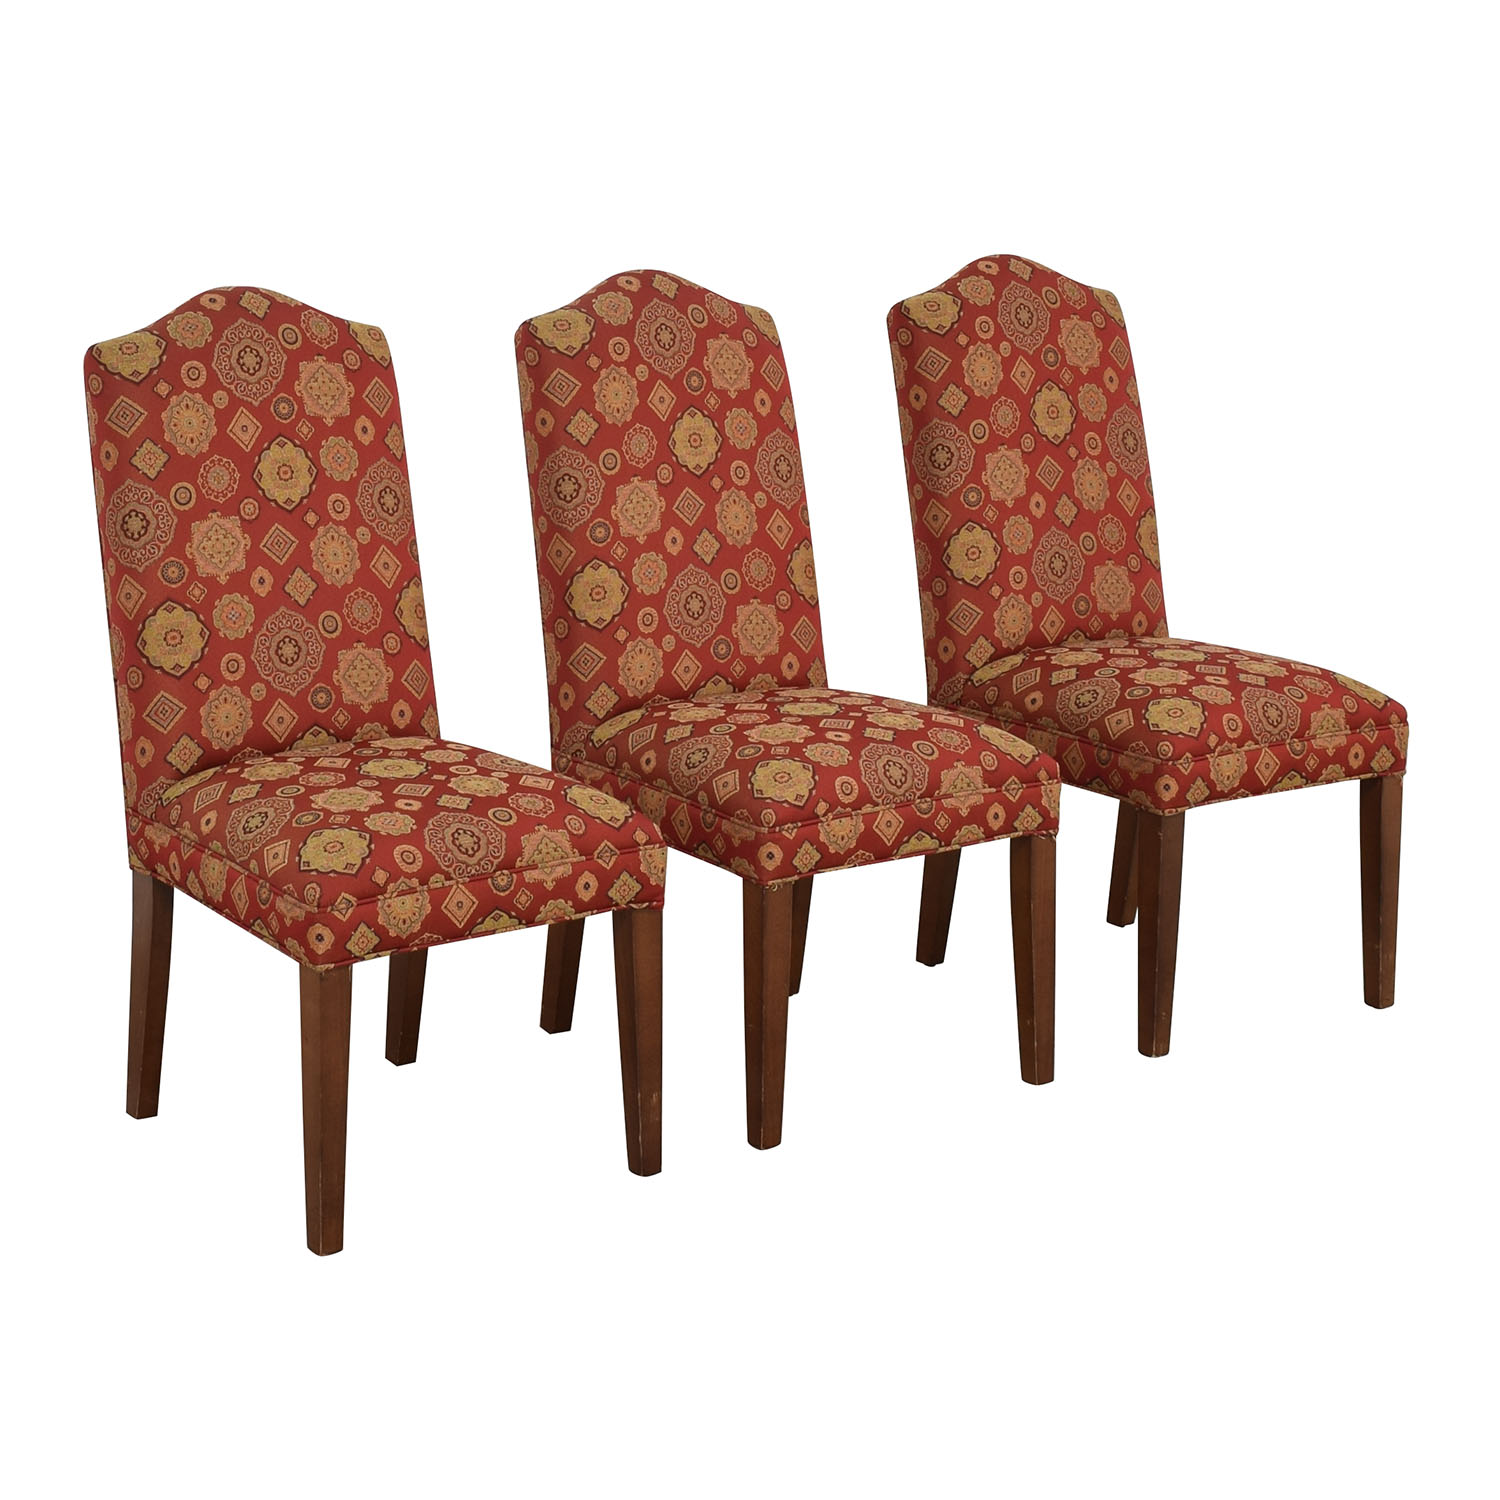 Ethan Allen Ethan Allen Upholstered Dining Chairs coupon